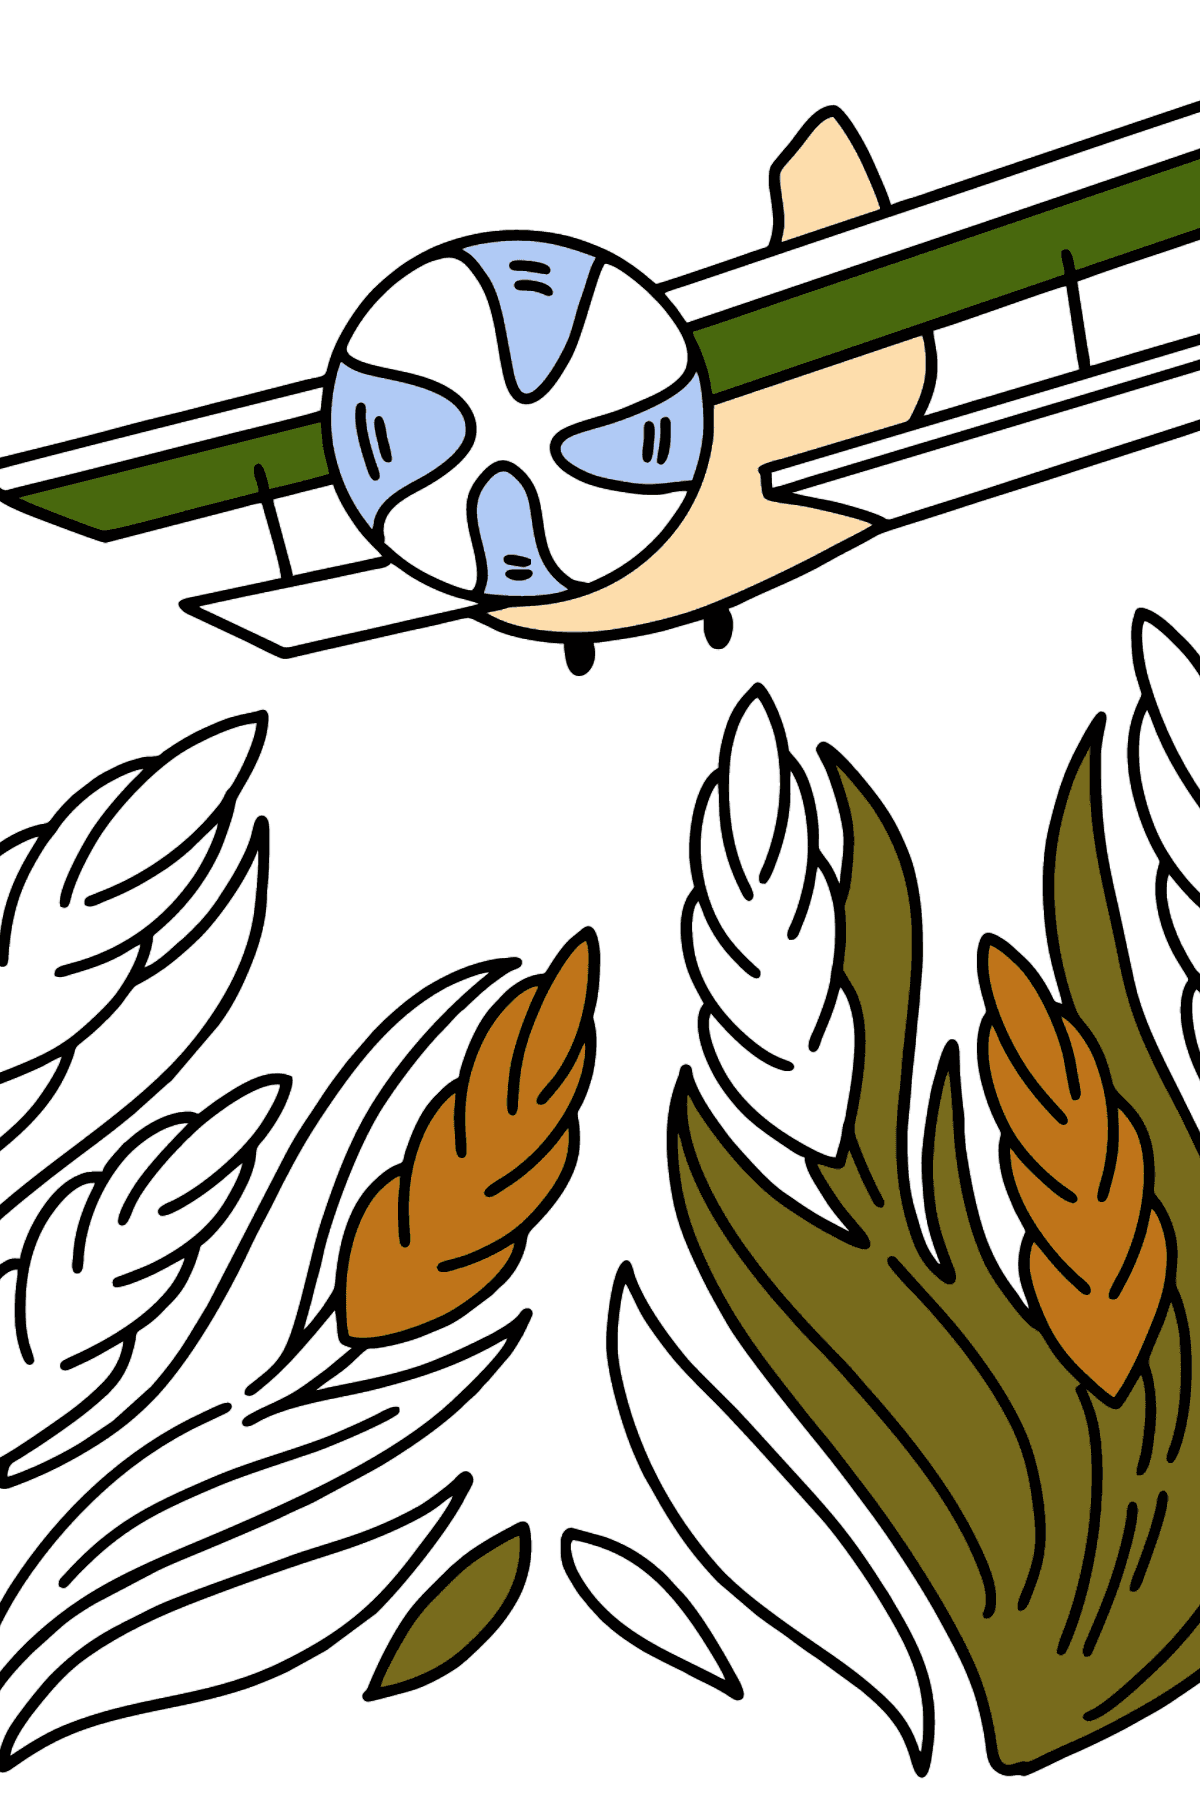 Airplane AN-2 coloring page - Coloring Pages for Kids